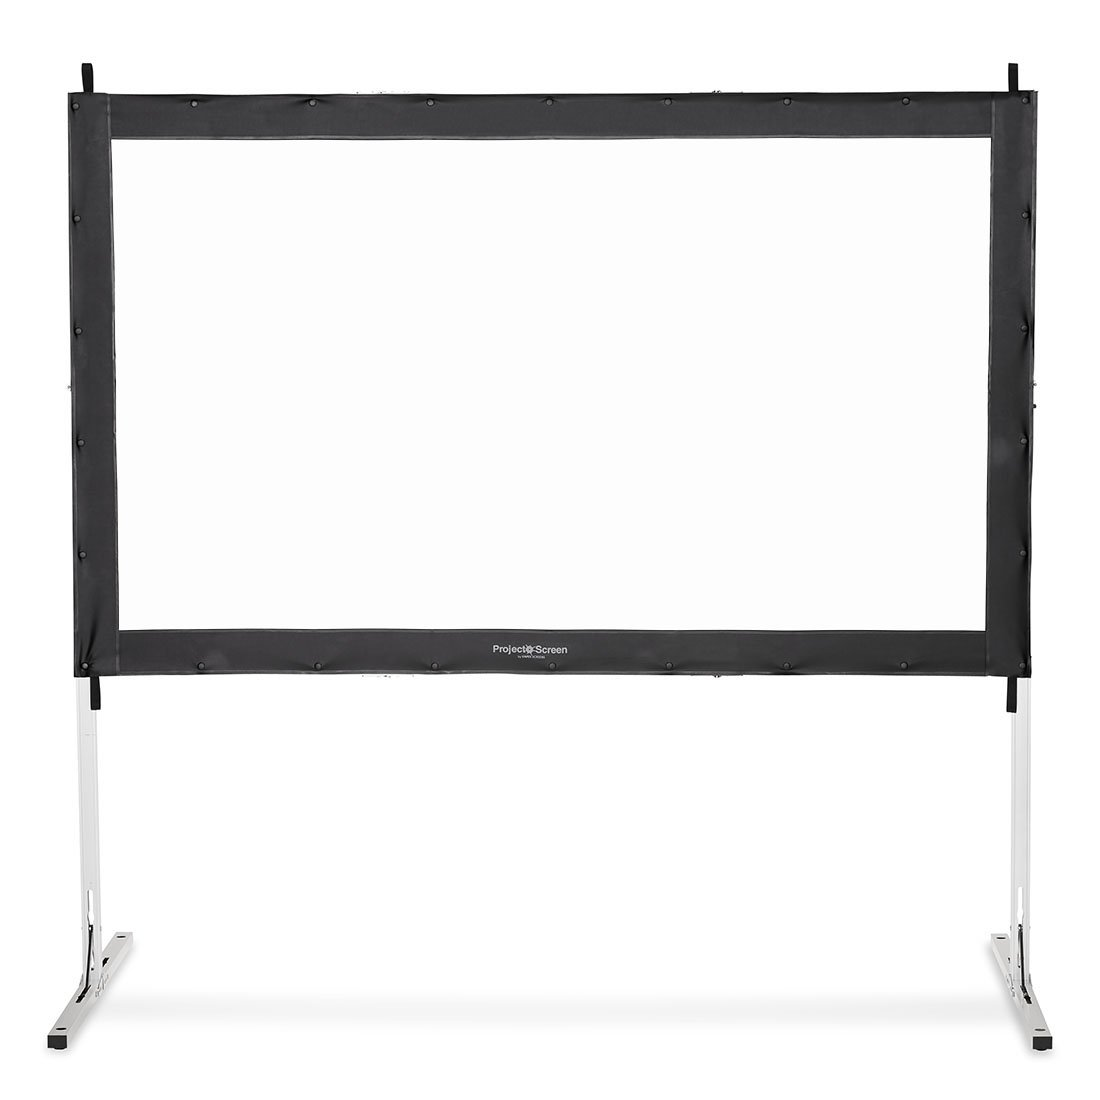 Visual Apex Projector Screen 120HD Portable Indoor/Outdoor Movie Theater Fast-Folding Projector Screen with Stand Legs and Carry Bag HD4K 16:9 format